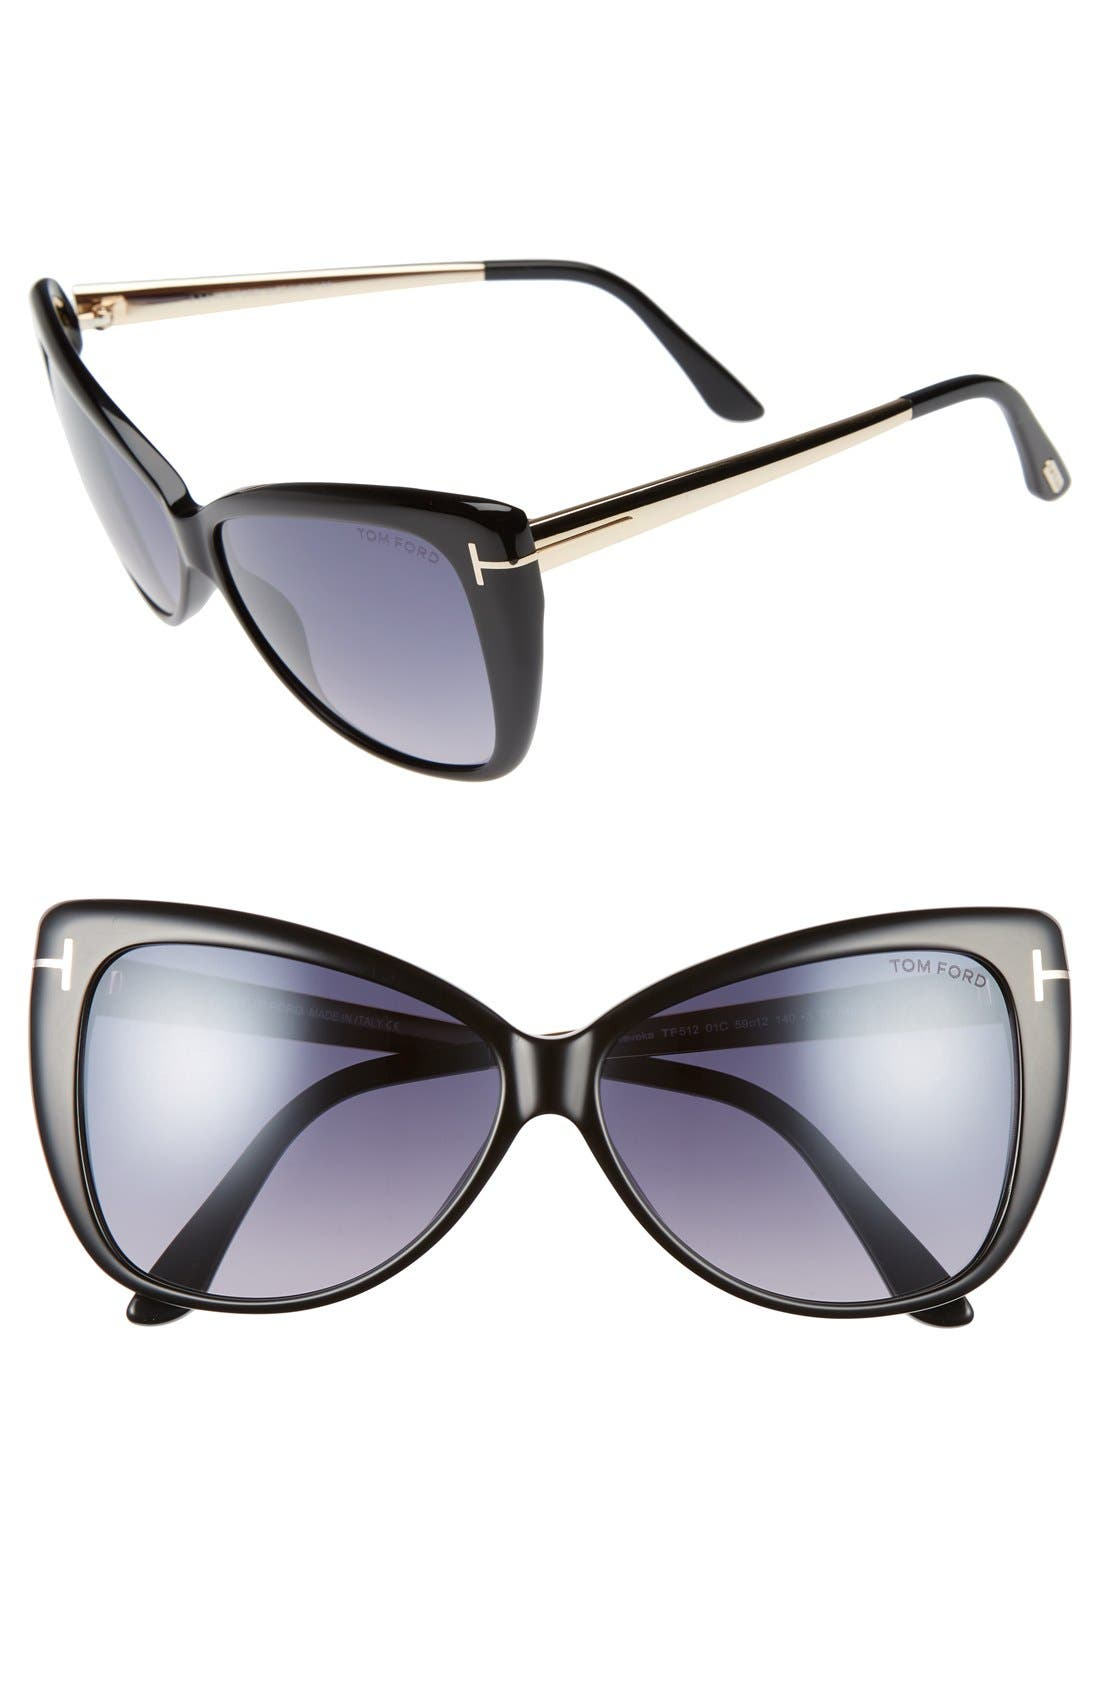 Tom Ford Reveka 59mm Special Fit Butterfly Sunglasses